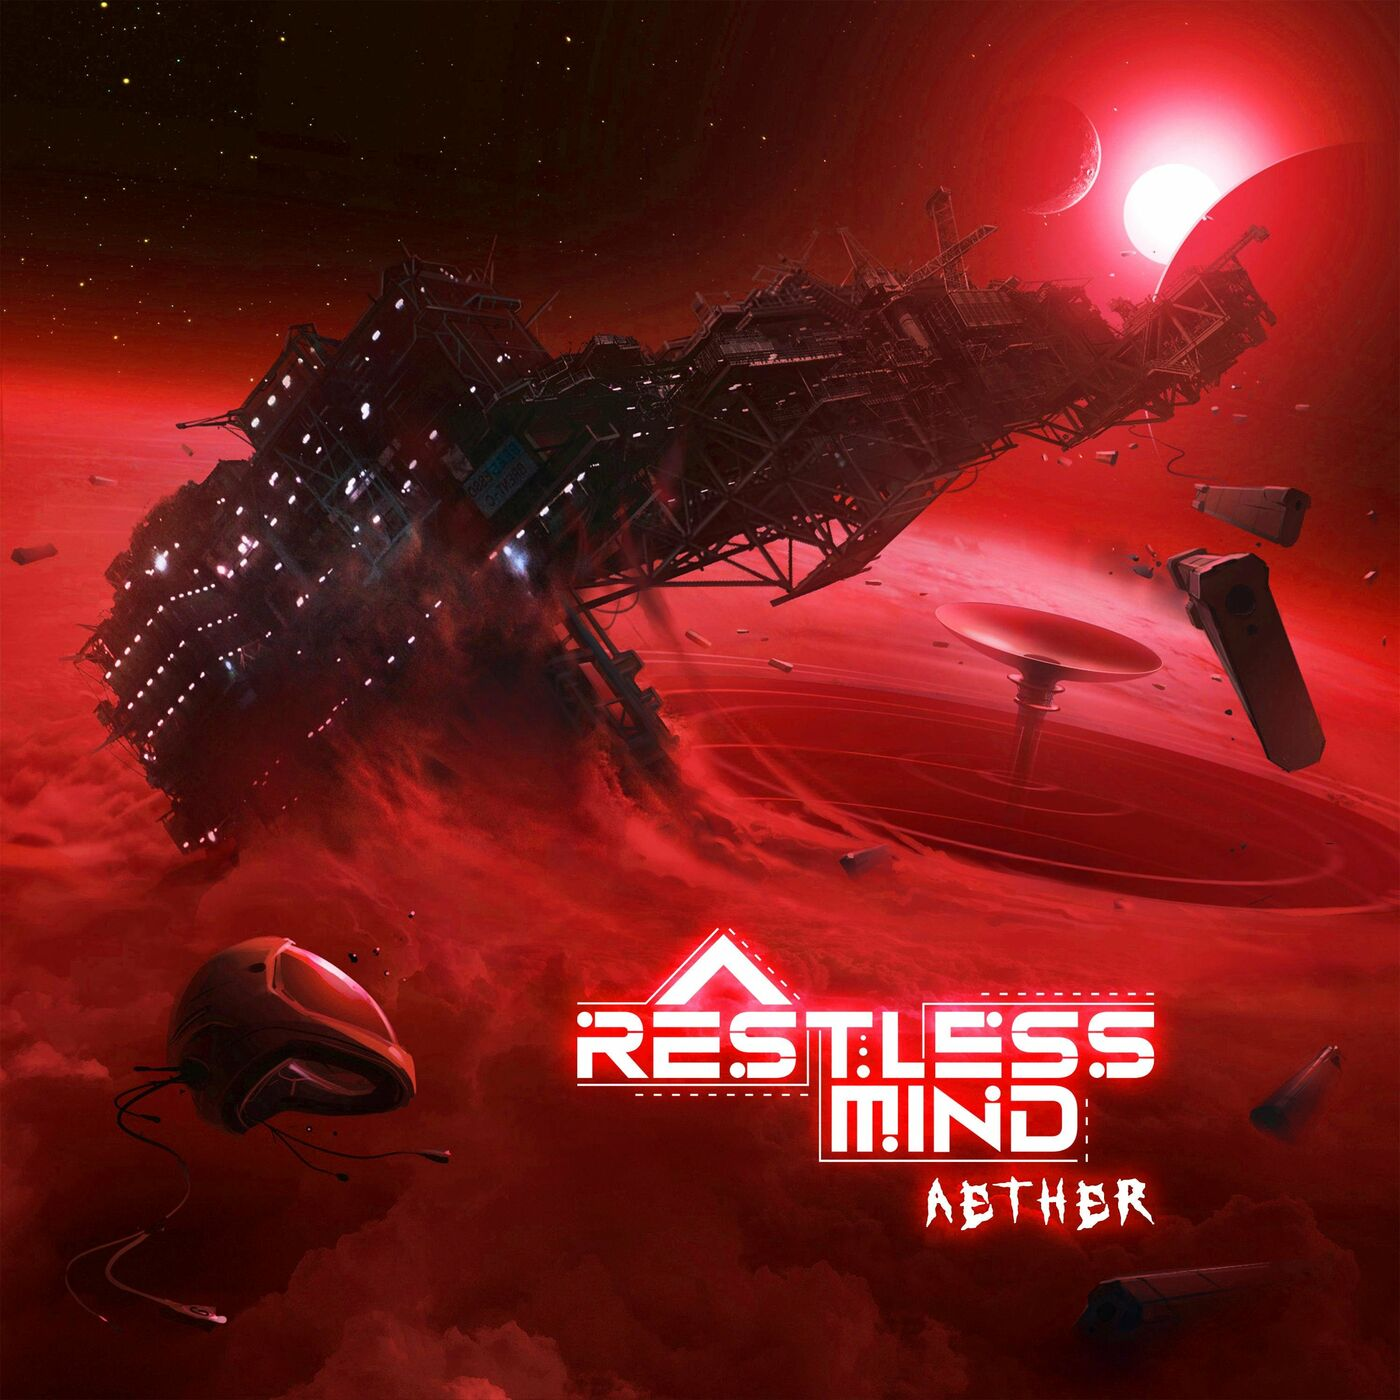 A Restless Mind - Aether (Instrumental) [EP] (2021)